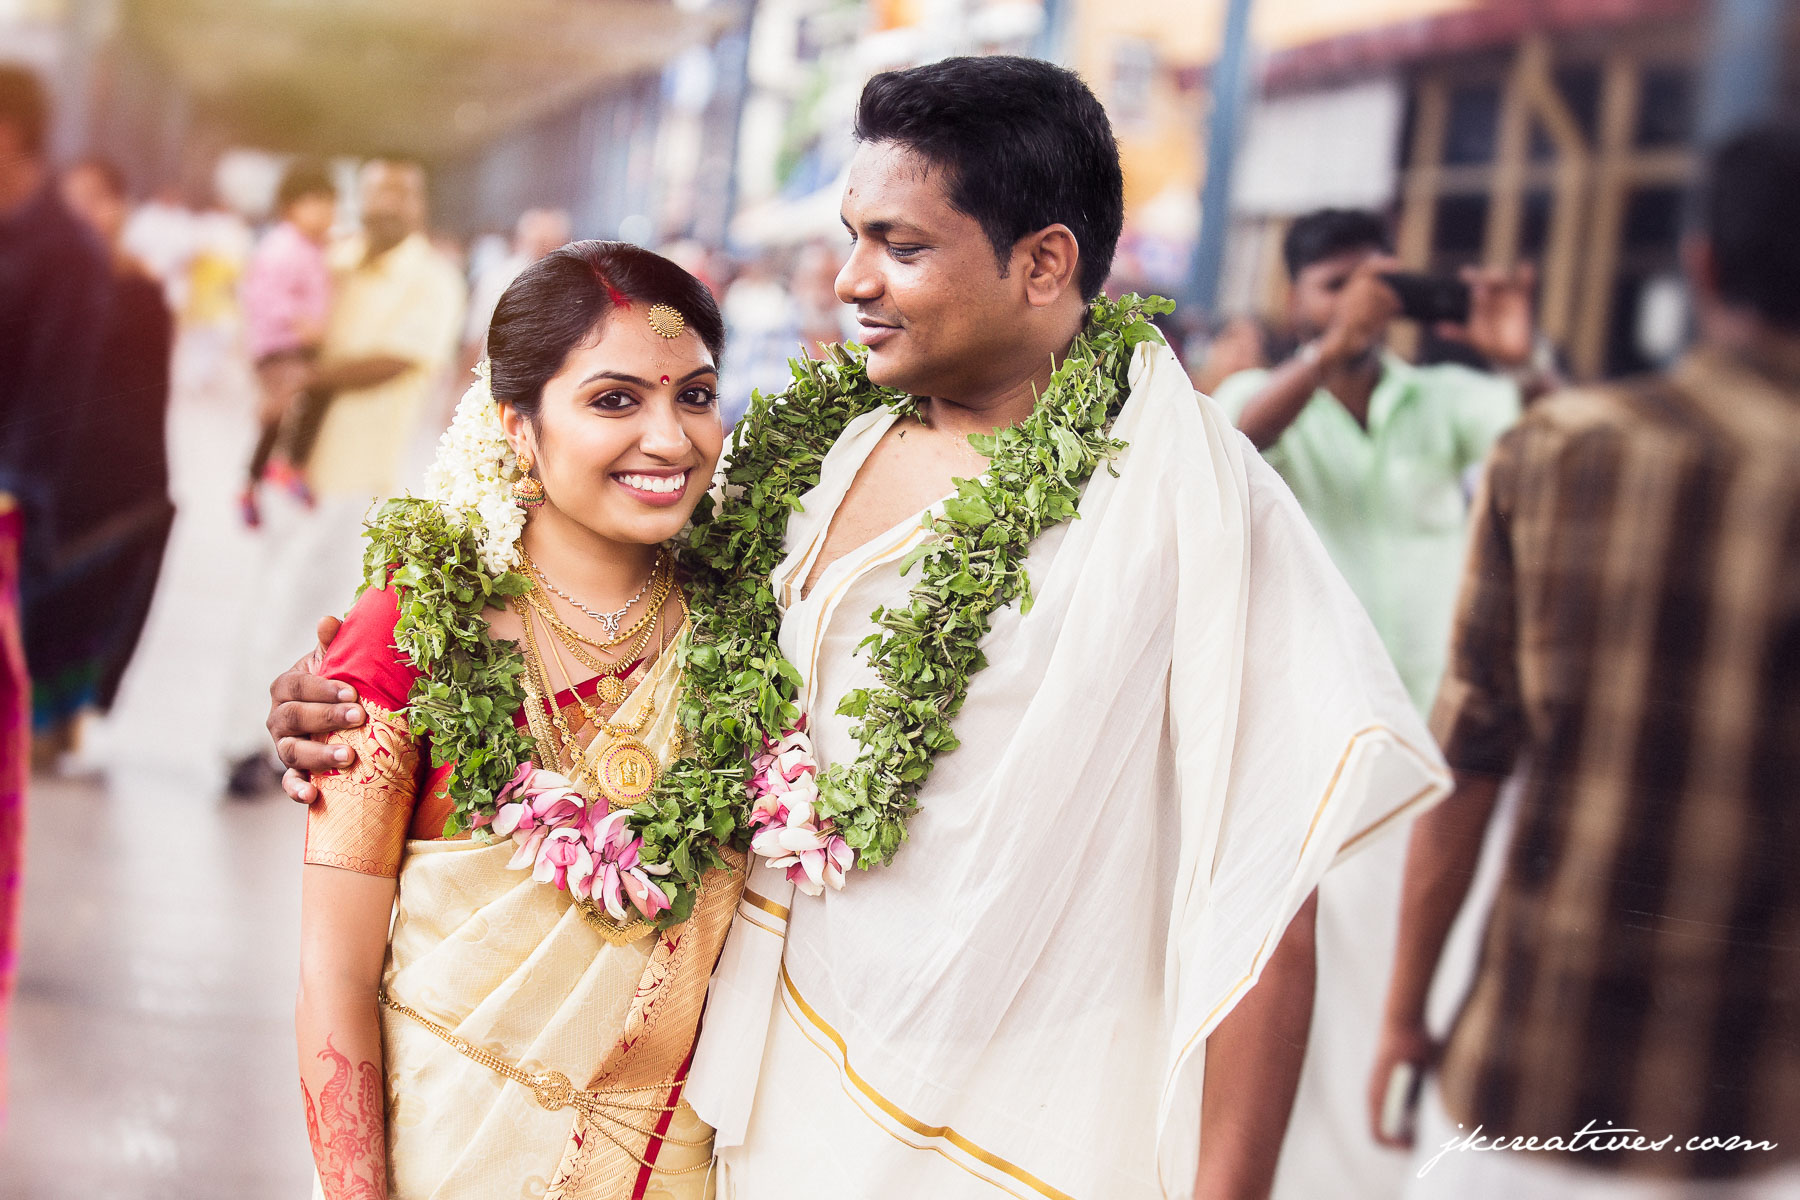 Arun & Manju - Kerala Hindu Wedding at Guruvayoor Temple - Candid Wedding Photography by Best Candid Wedding Photographer_Coimbatore, Chennai, Bangalore, Tamil Nadu, Hyderabad,Kerala